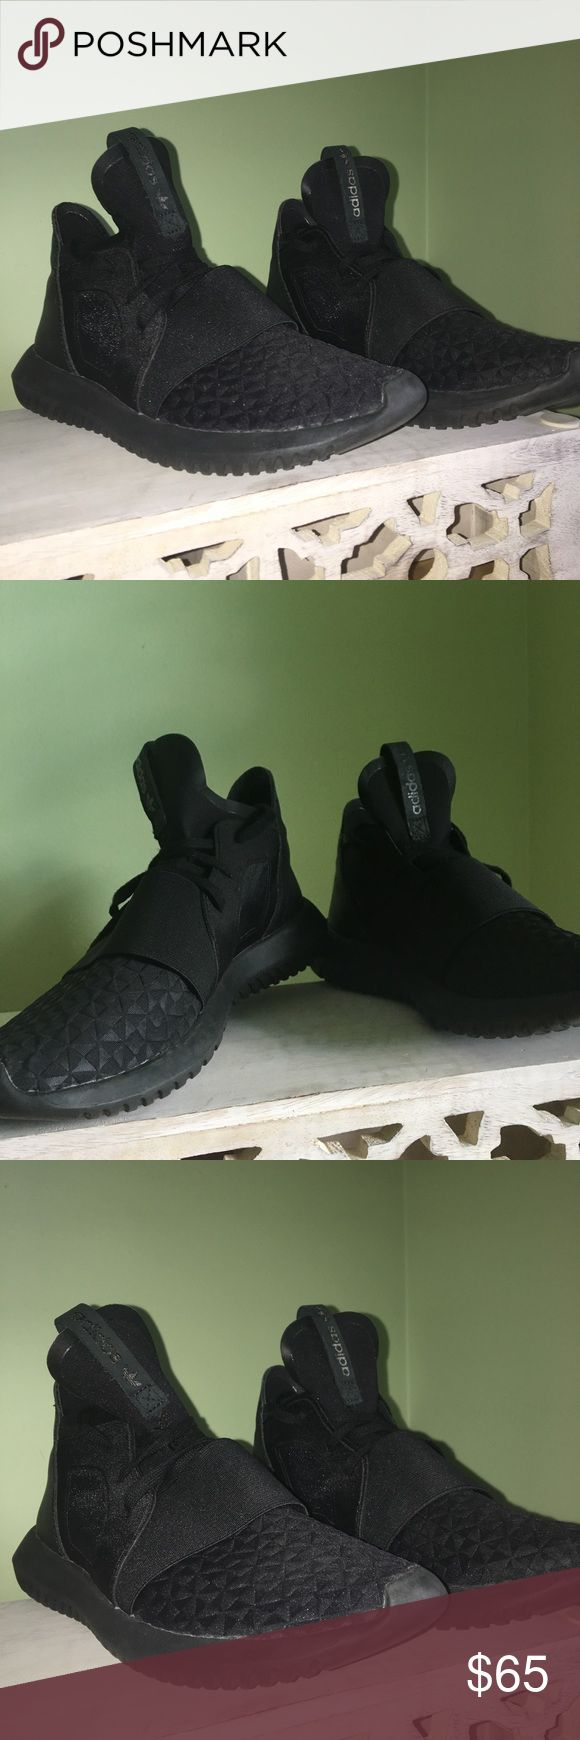 ADIDAS TUBULAR DEFIANT VERY NEW                                                                             - All BLACK                                                                                 -SIZE 6 MENS adidas Shoes Sneakers